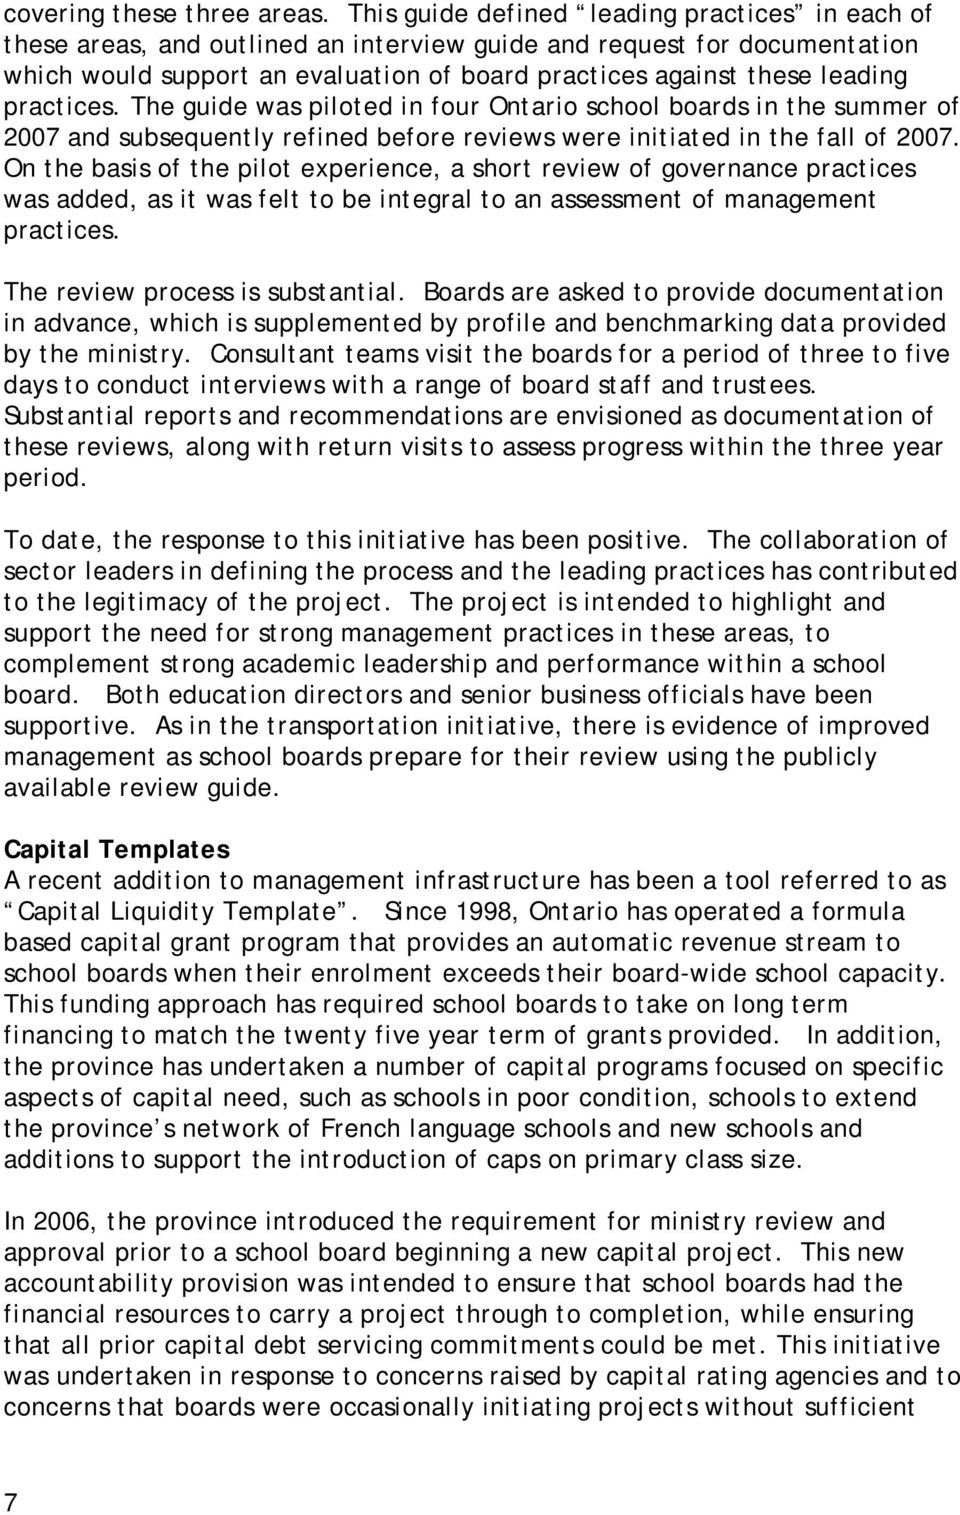 practices. The guide was piloted in four Ontario school boards in the summer of 2007 and subsequently refined before reviews were initiated in the fall of 2007.